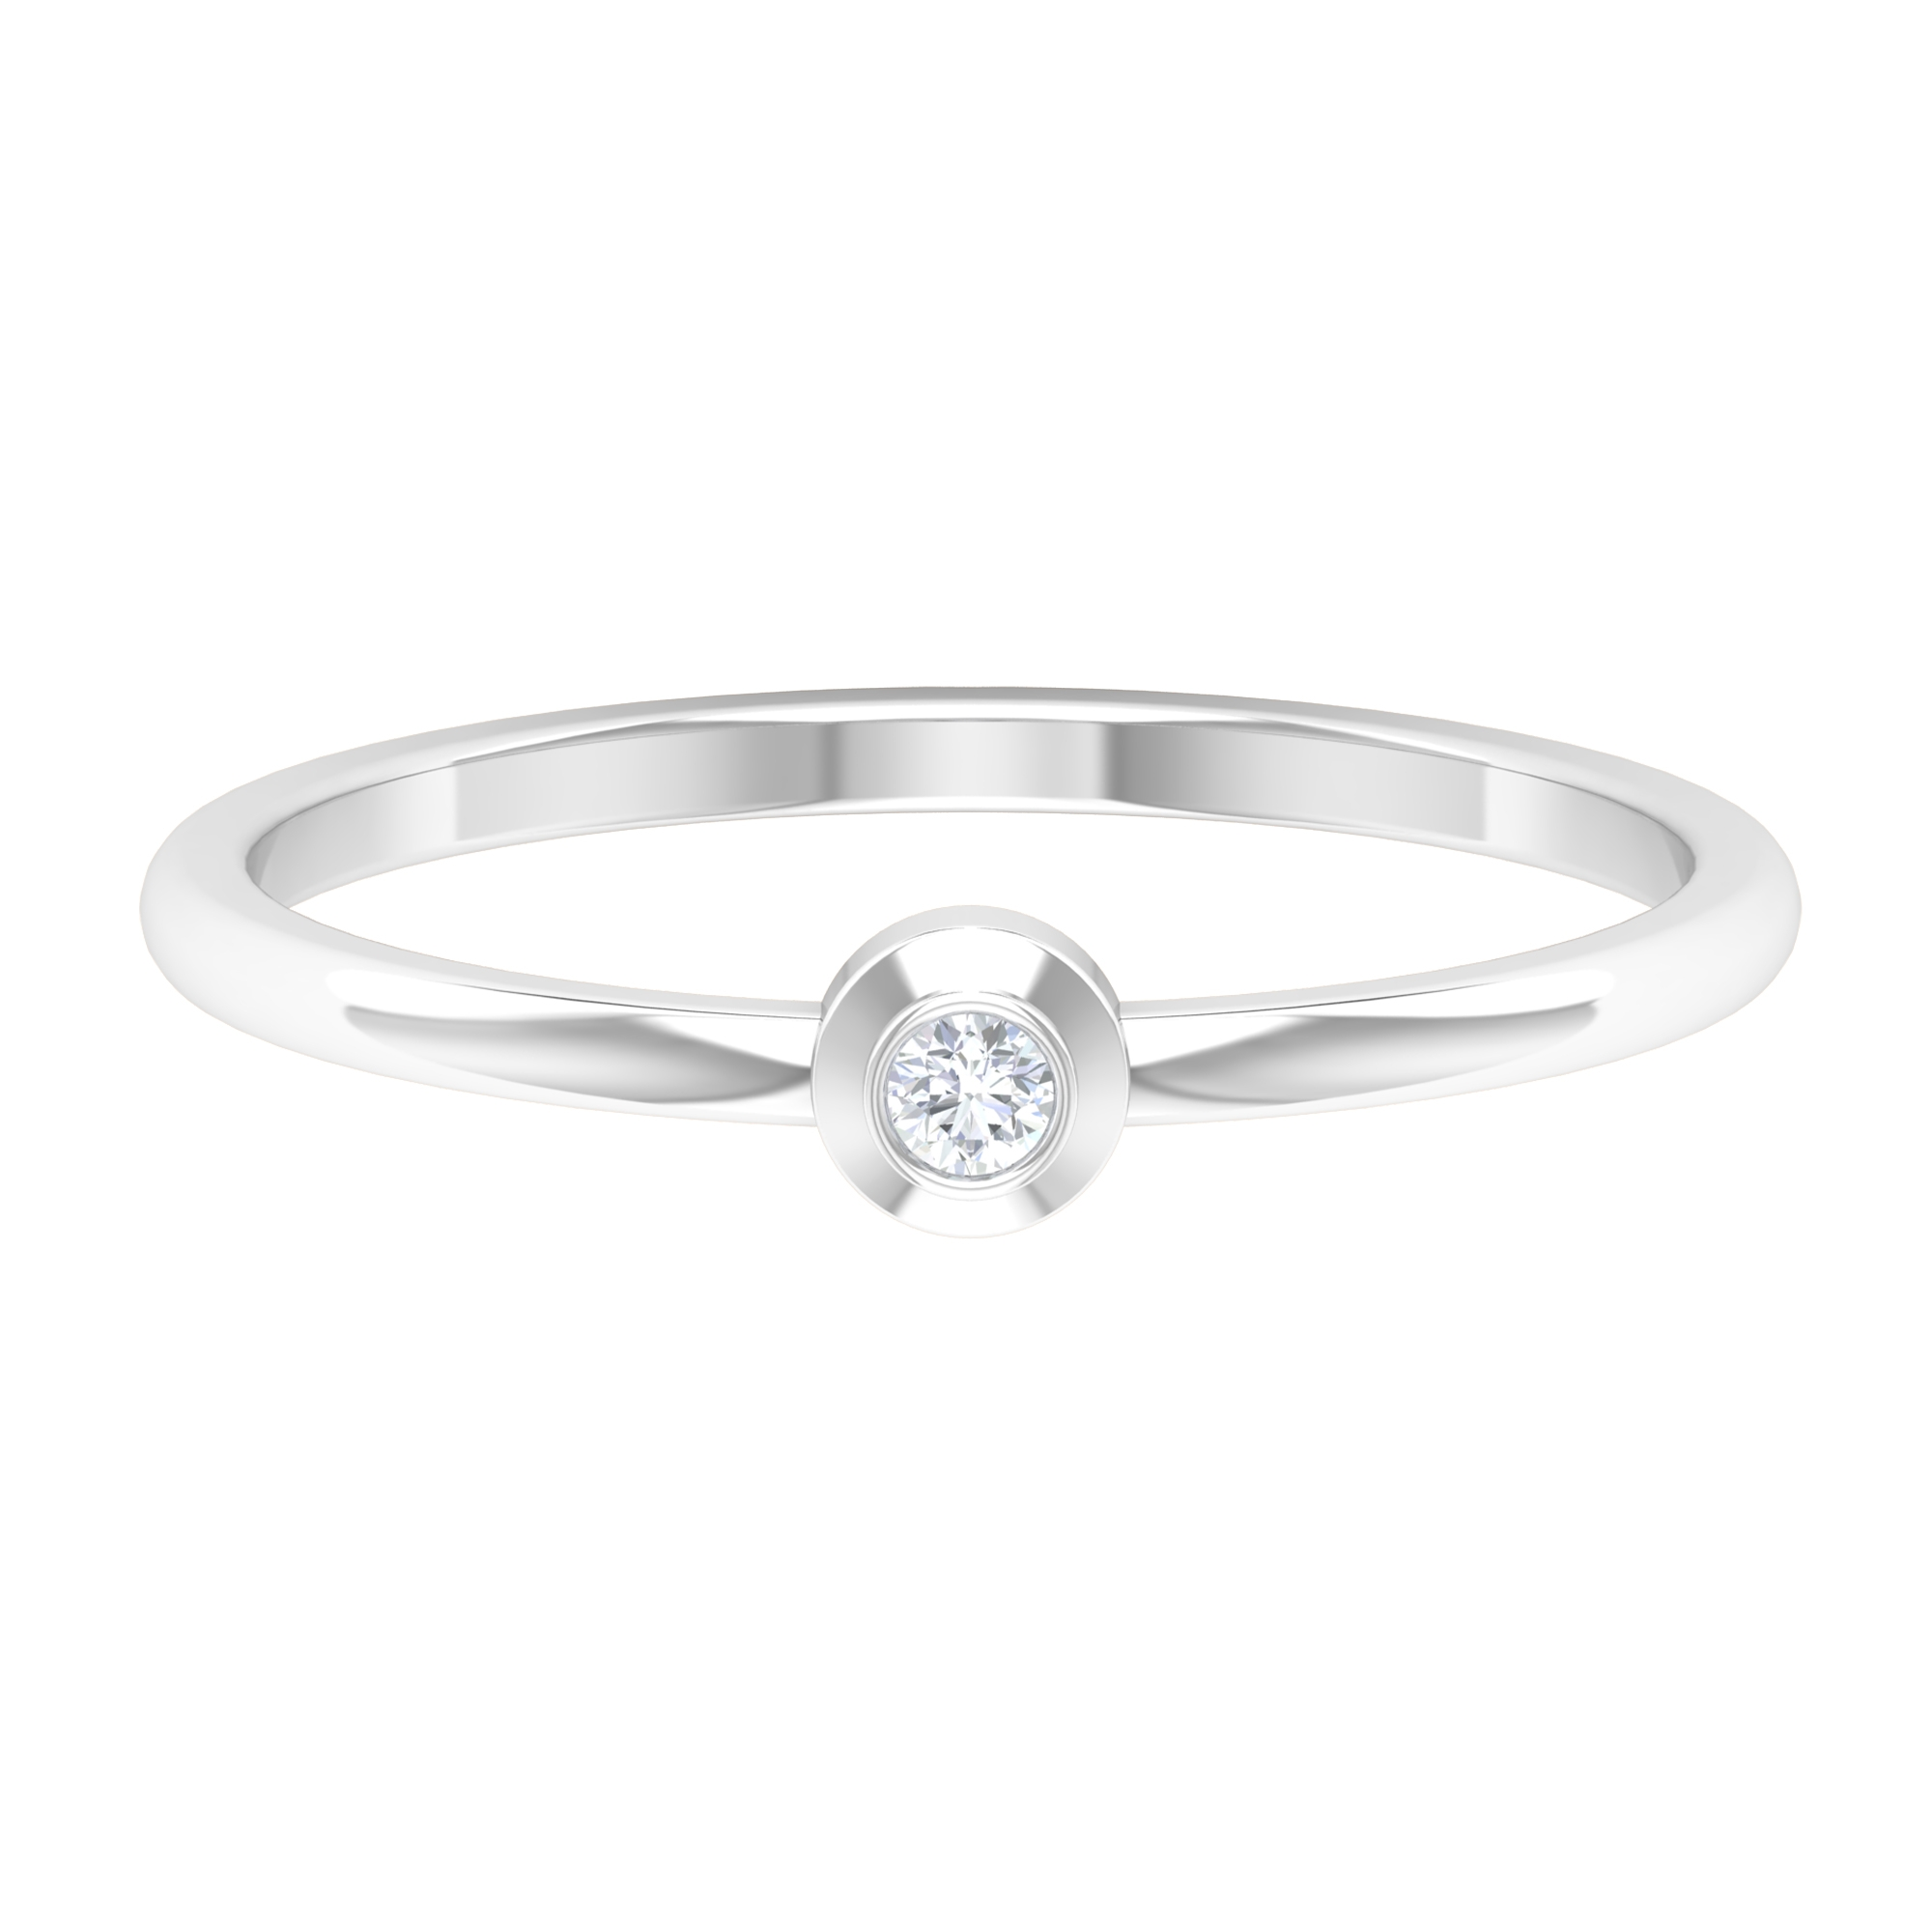 2 MM Dainty Round Cut Diamond and Gold Ring in Bezel Setting